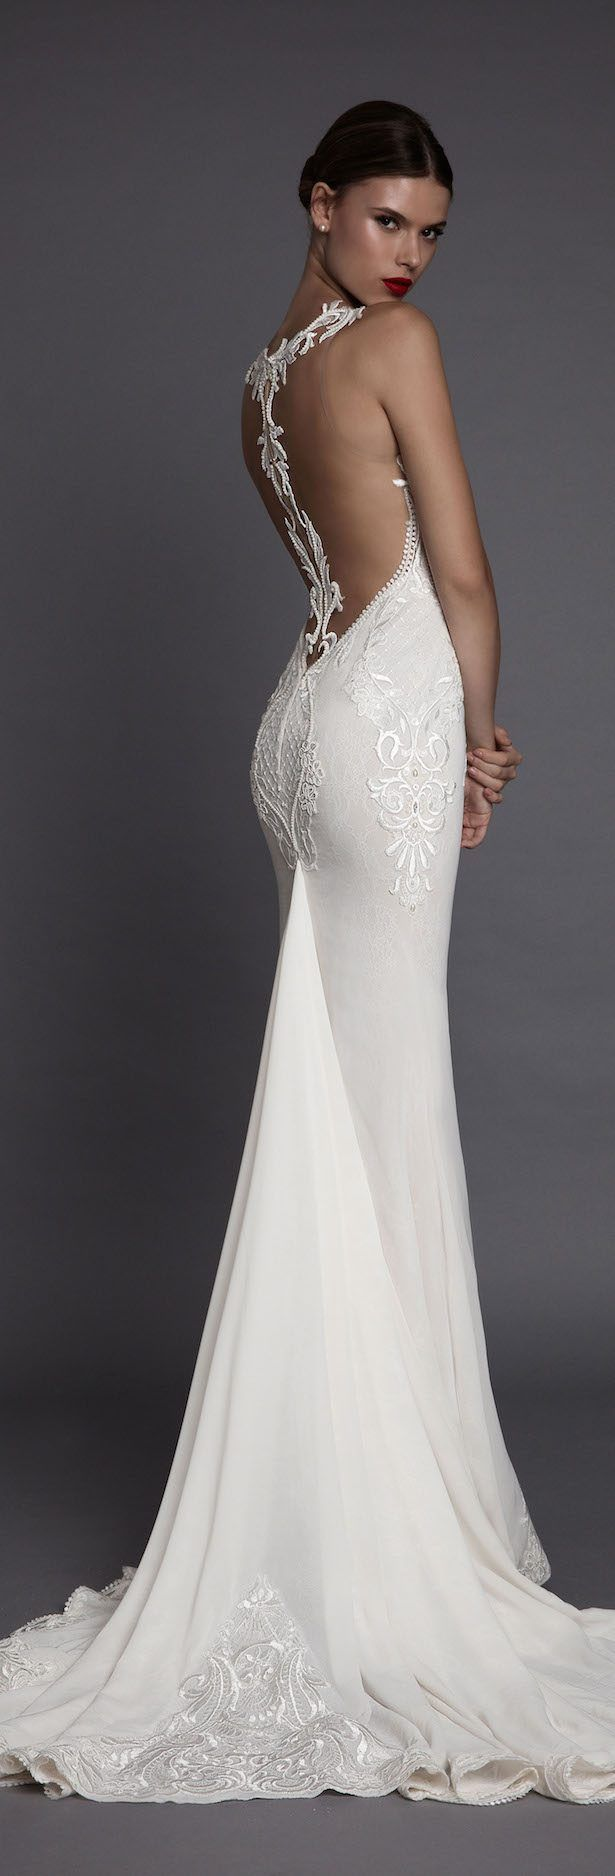 Gucci mane wife wedding dress   best Weddings images on Pinterest  Night out dresses Prom